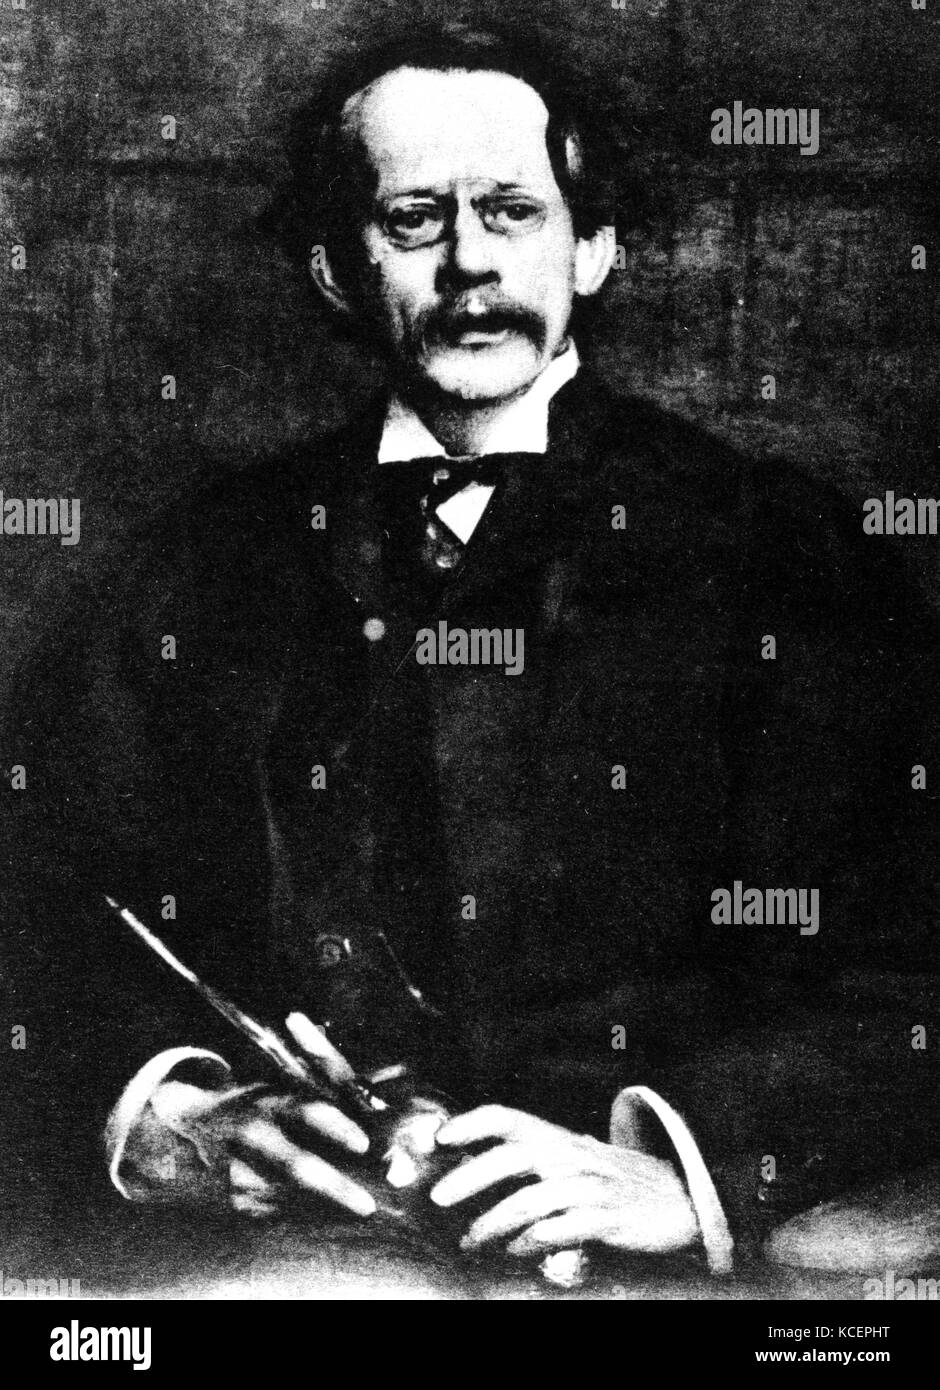 Photograph of J. J. Thompson (1856-1940) an English physicist and Noble Prize laureate in Physics. Dated 20th Century Stock Photo